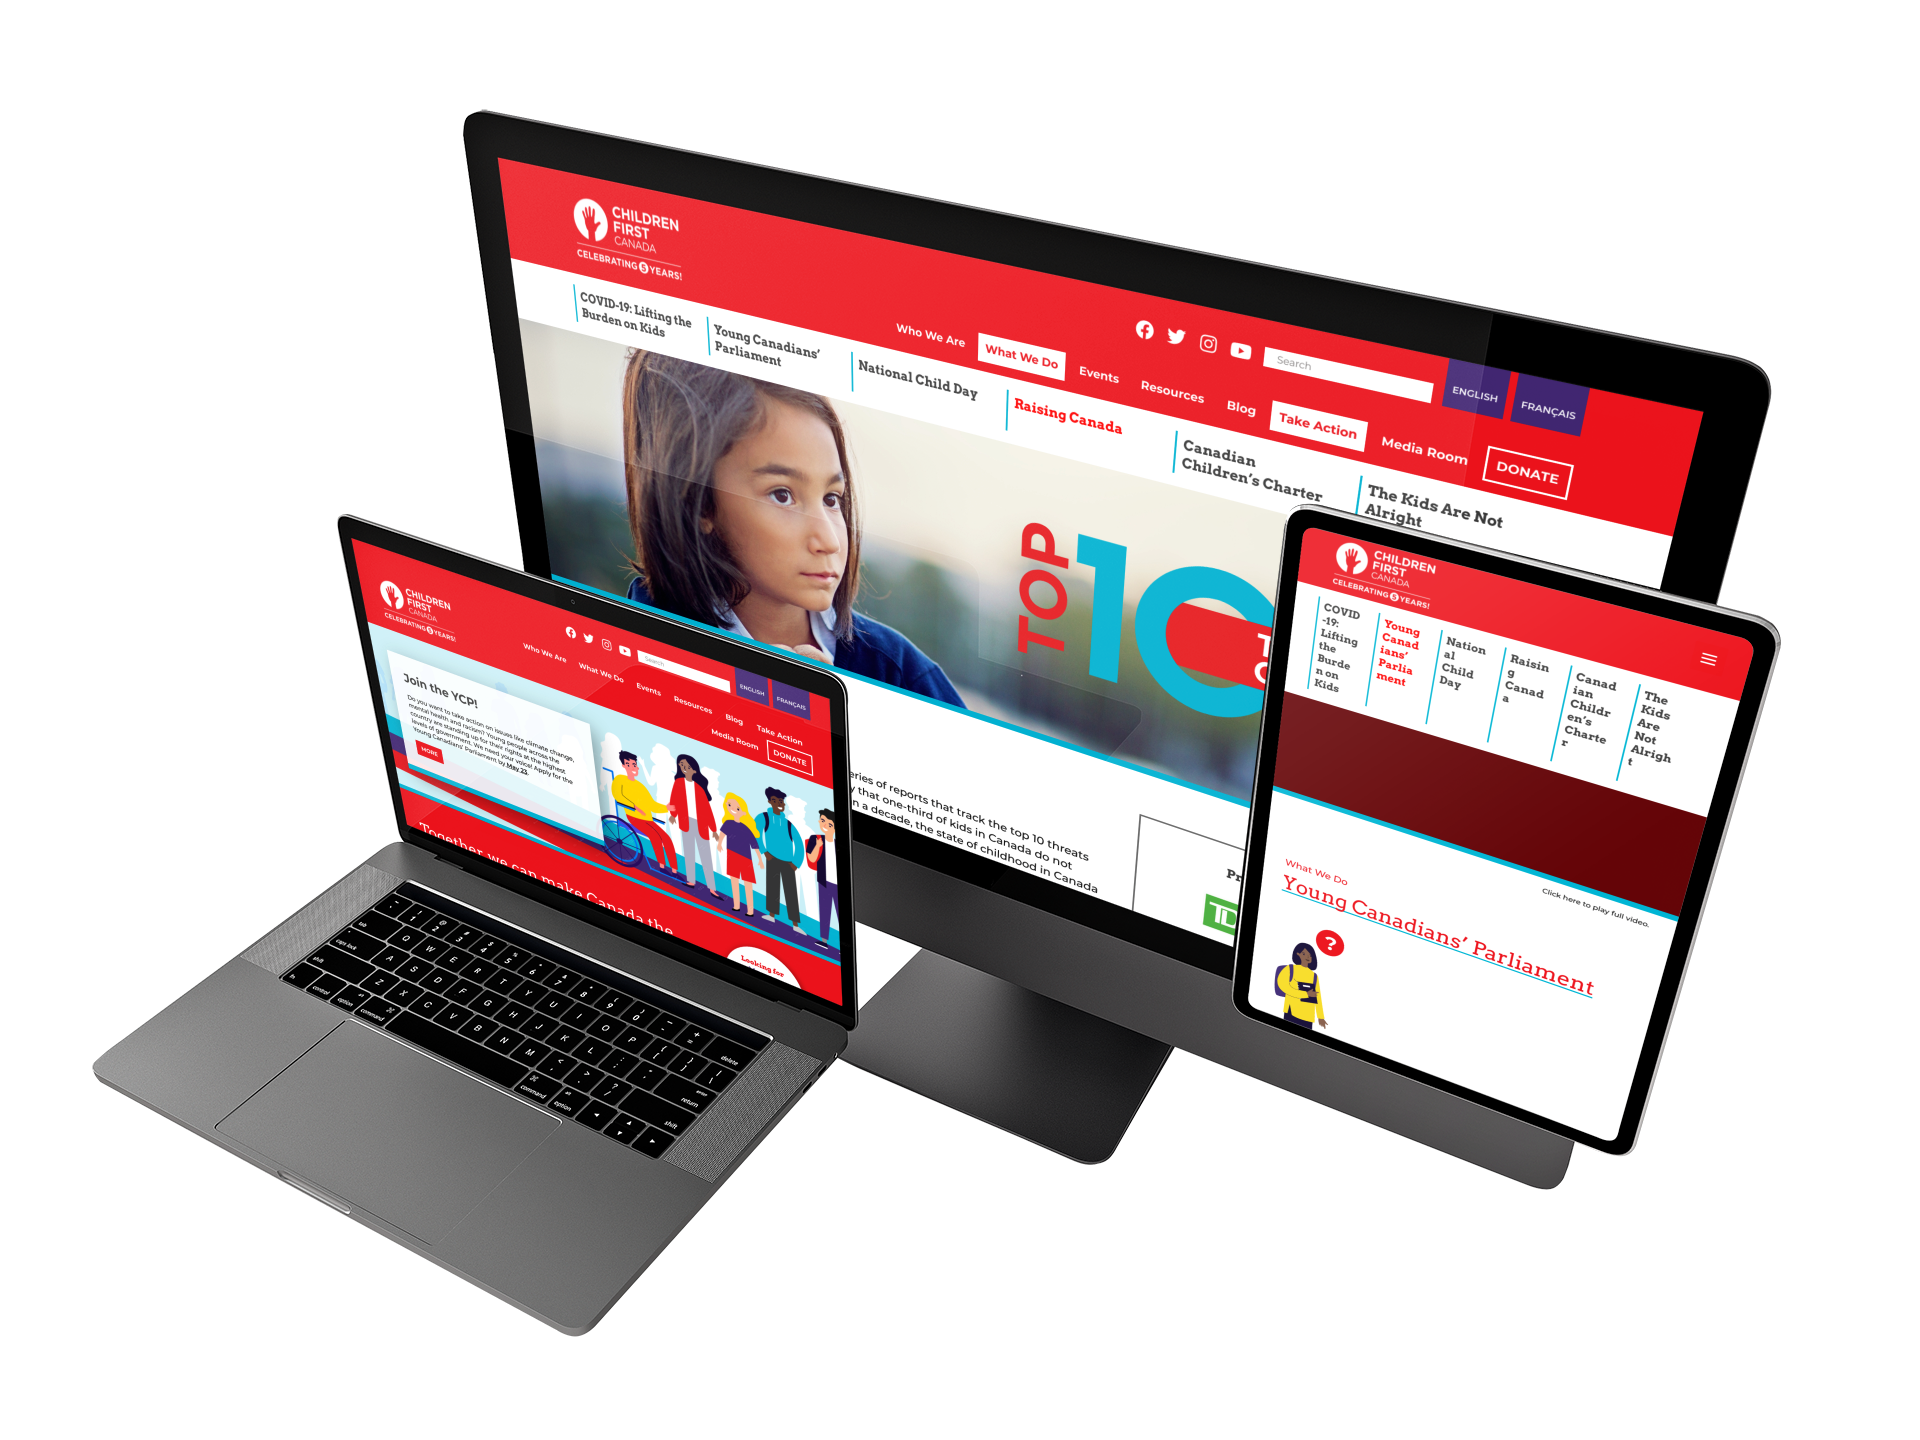 Children First Canada website mockup created by WebSuitable